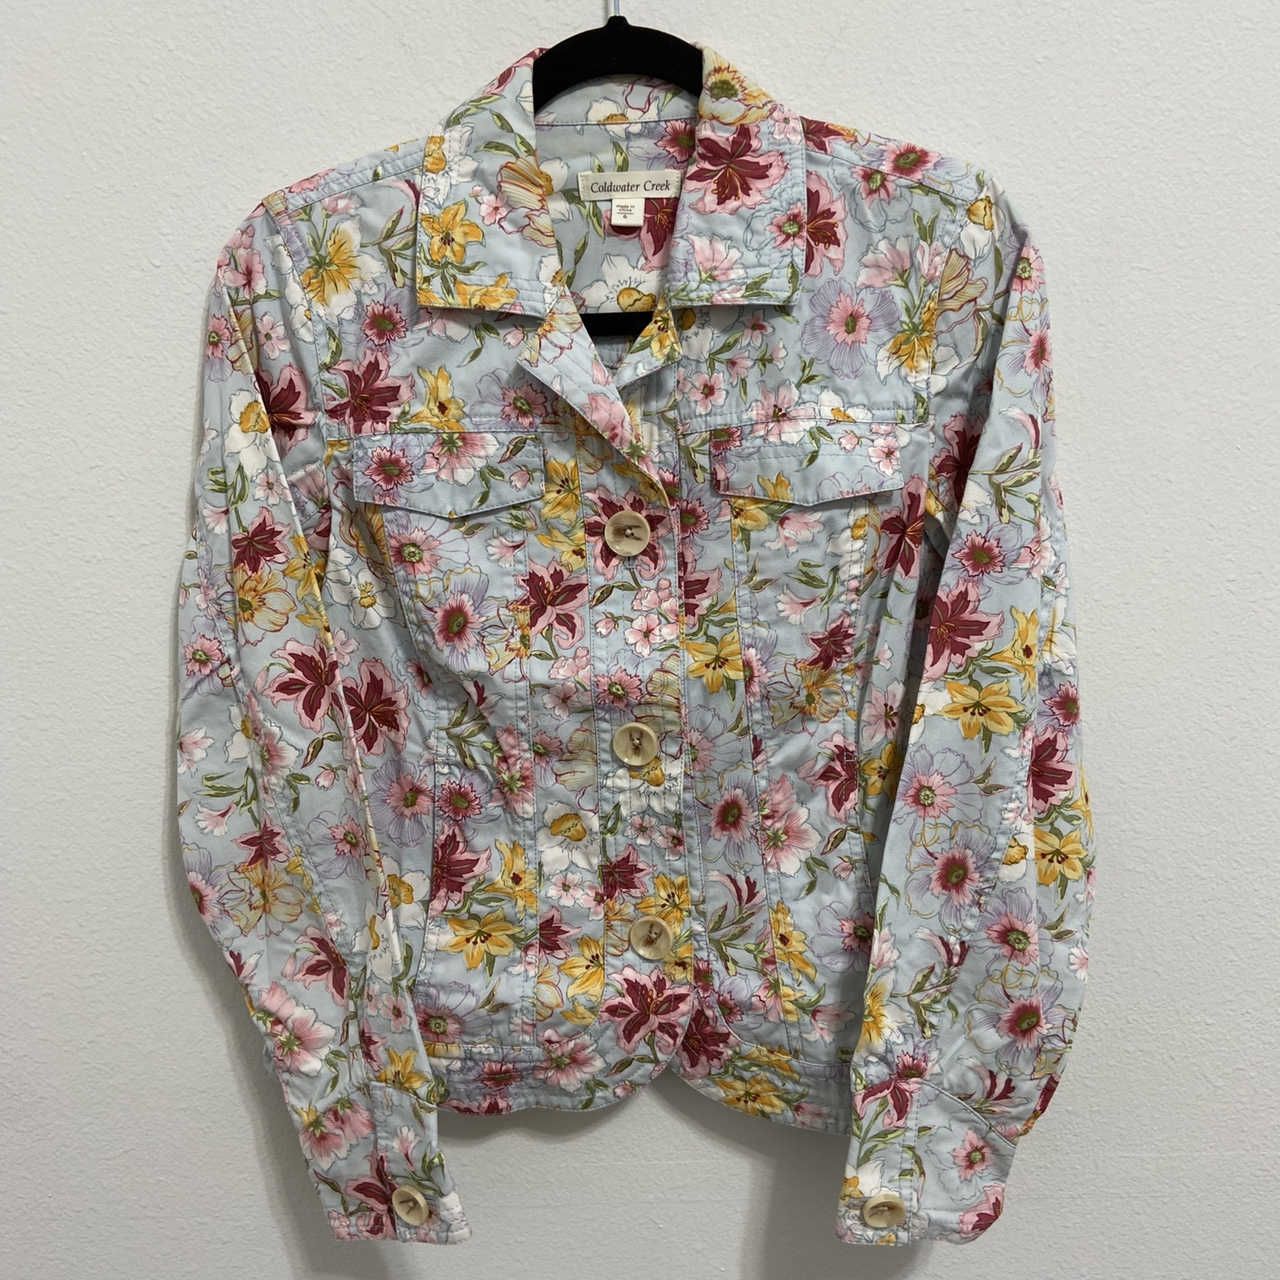 Product Image 1 - Y2K Coldwater Creek Women's Floral